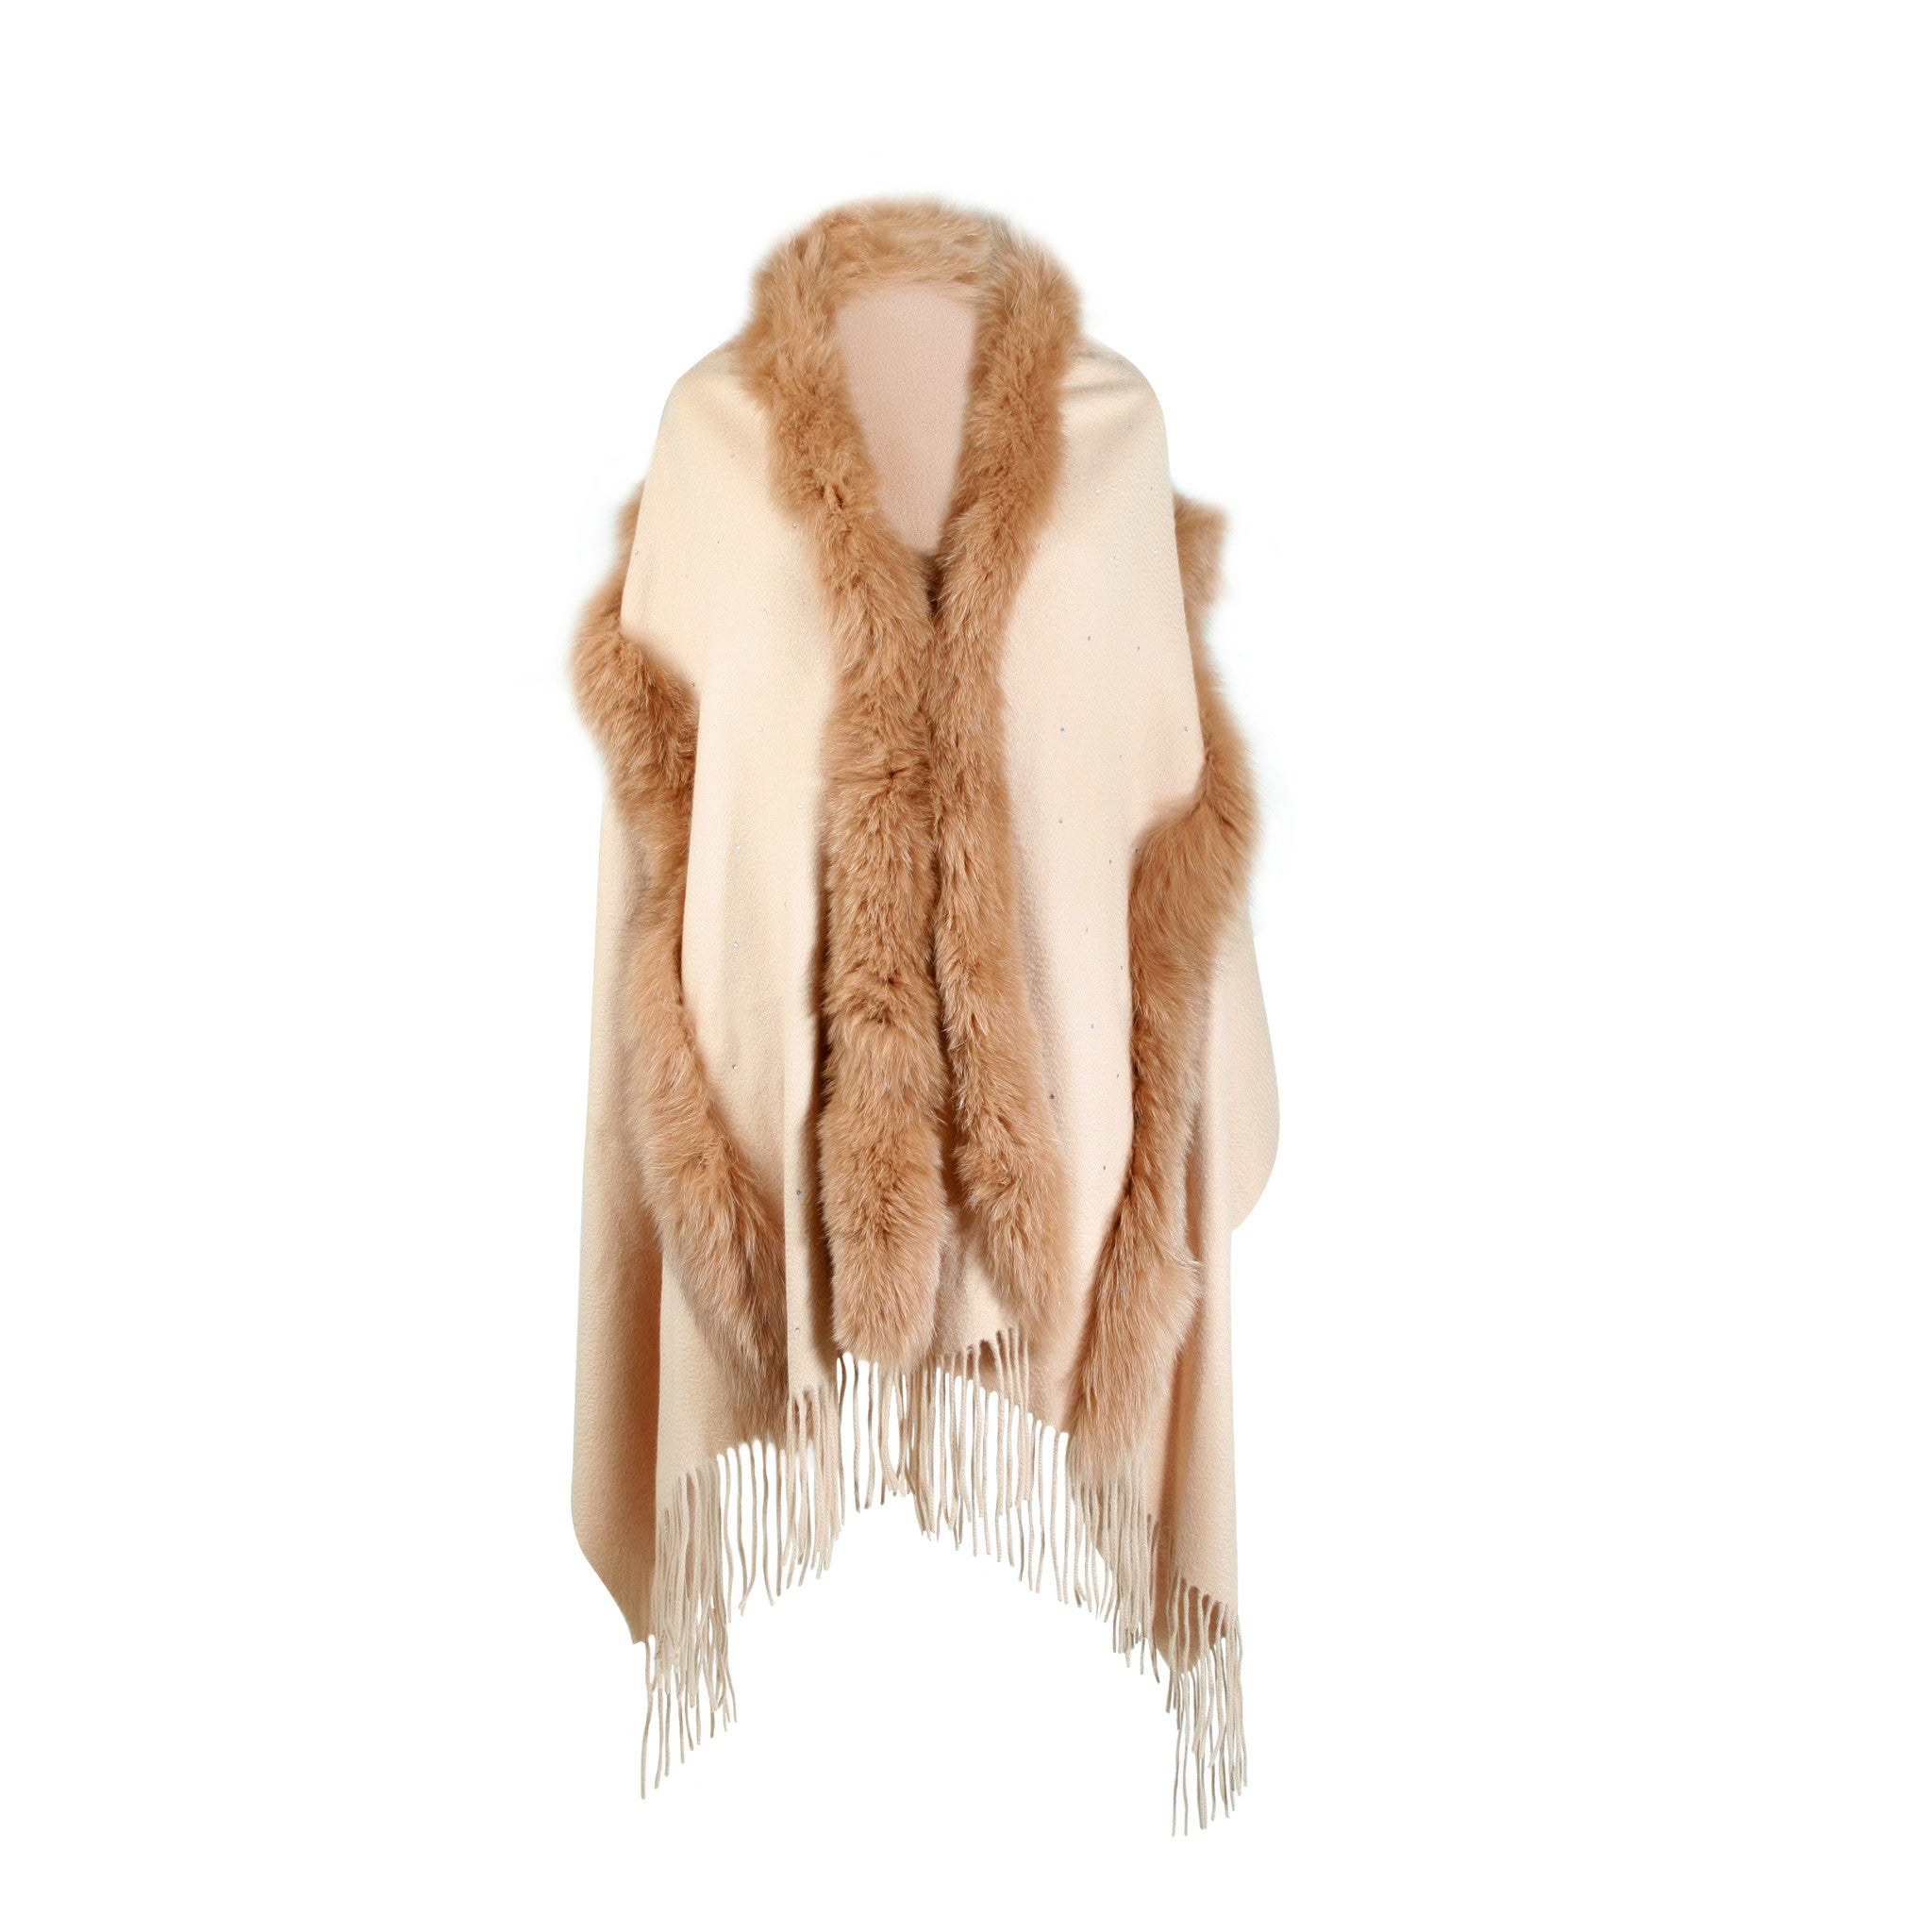 Beige Camel Cashmere Cape with fur trim | buy at The Cashmere Choice | London